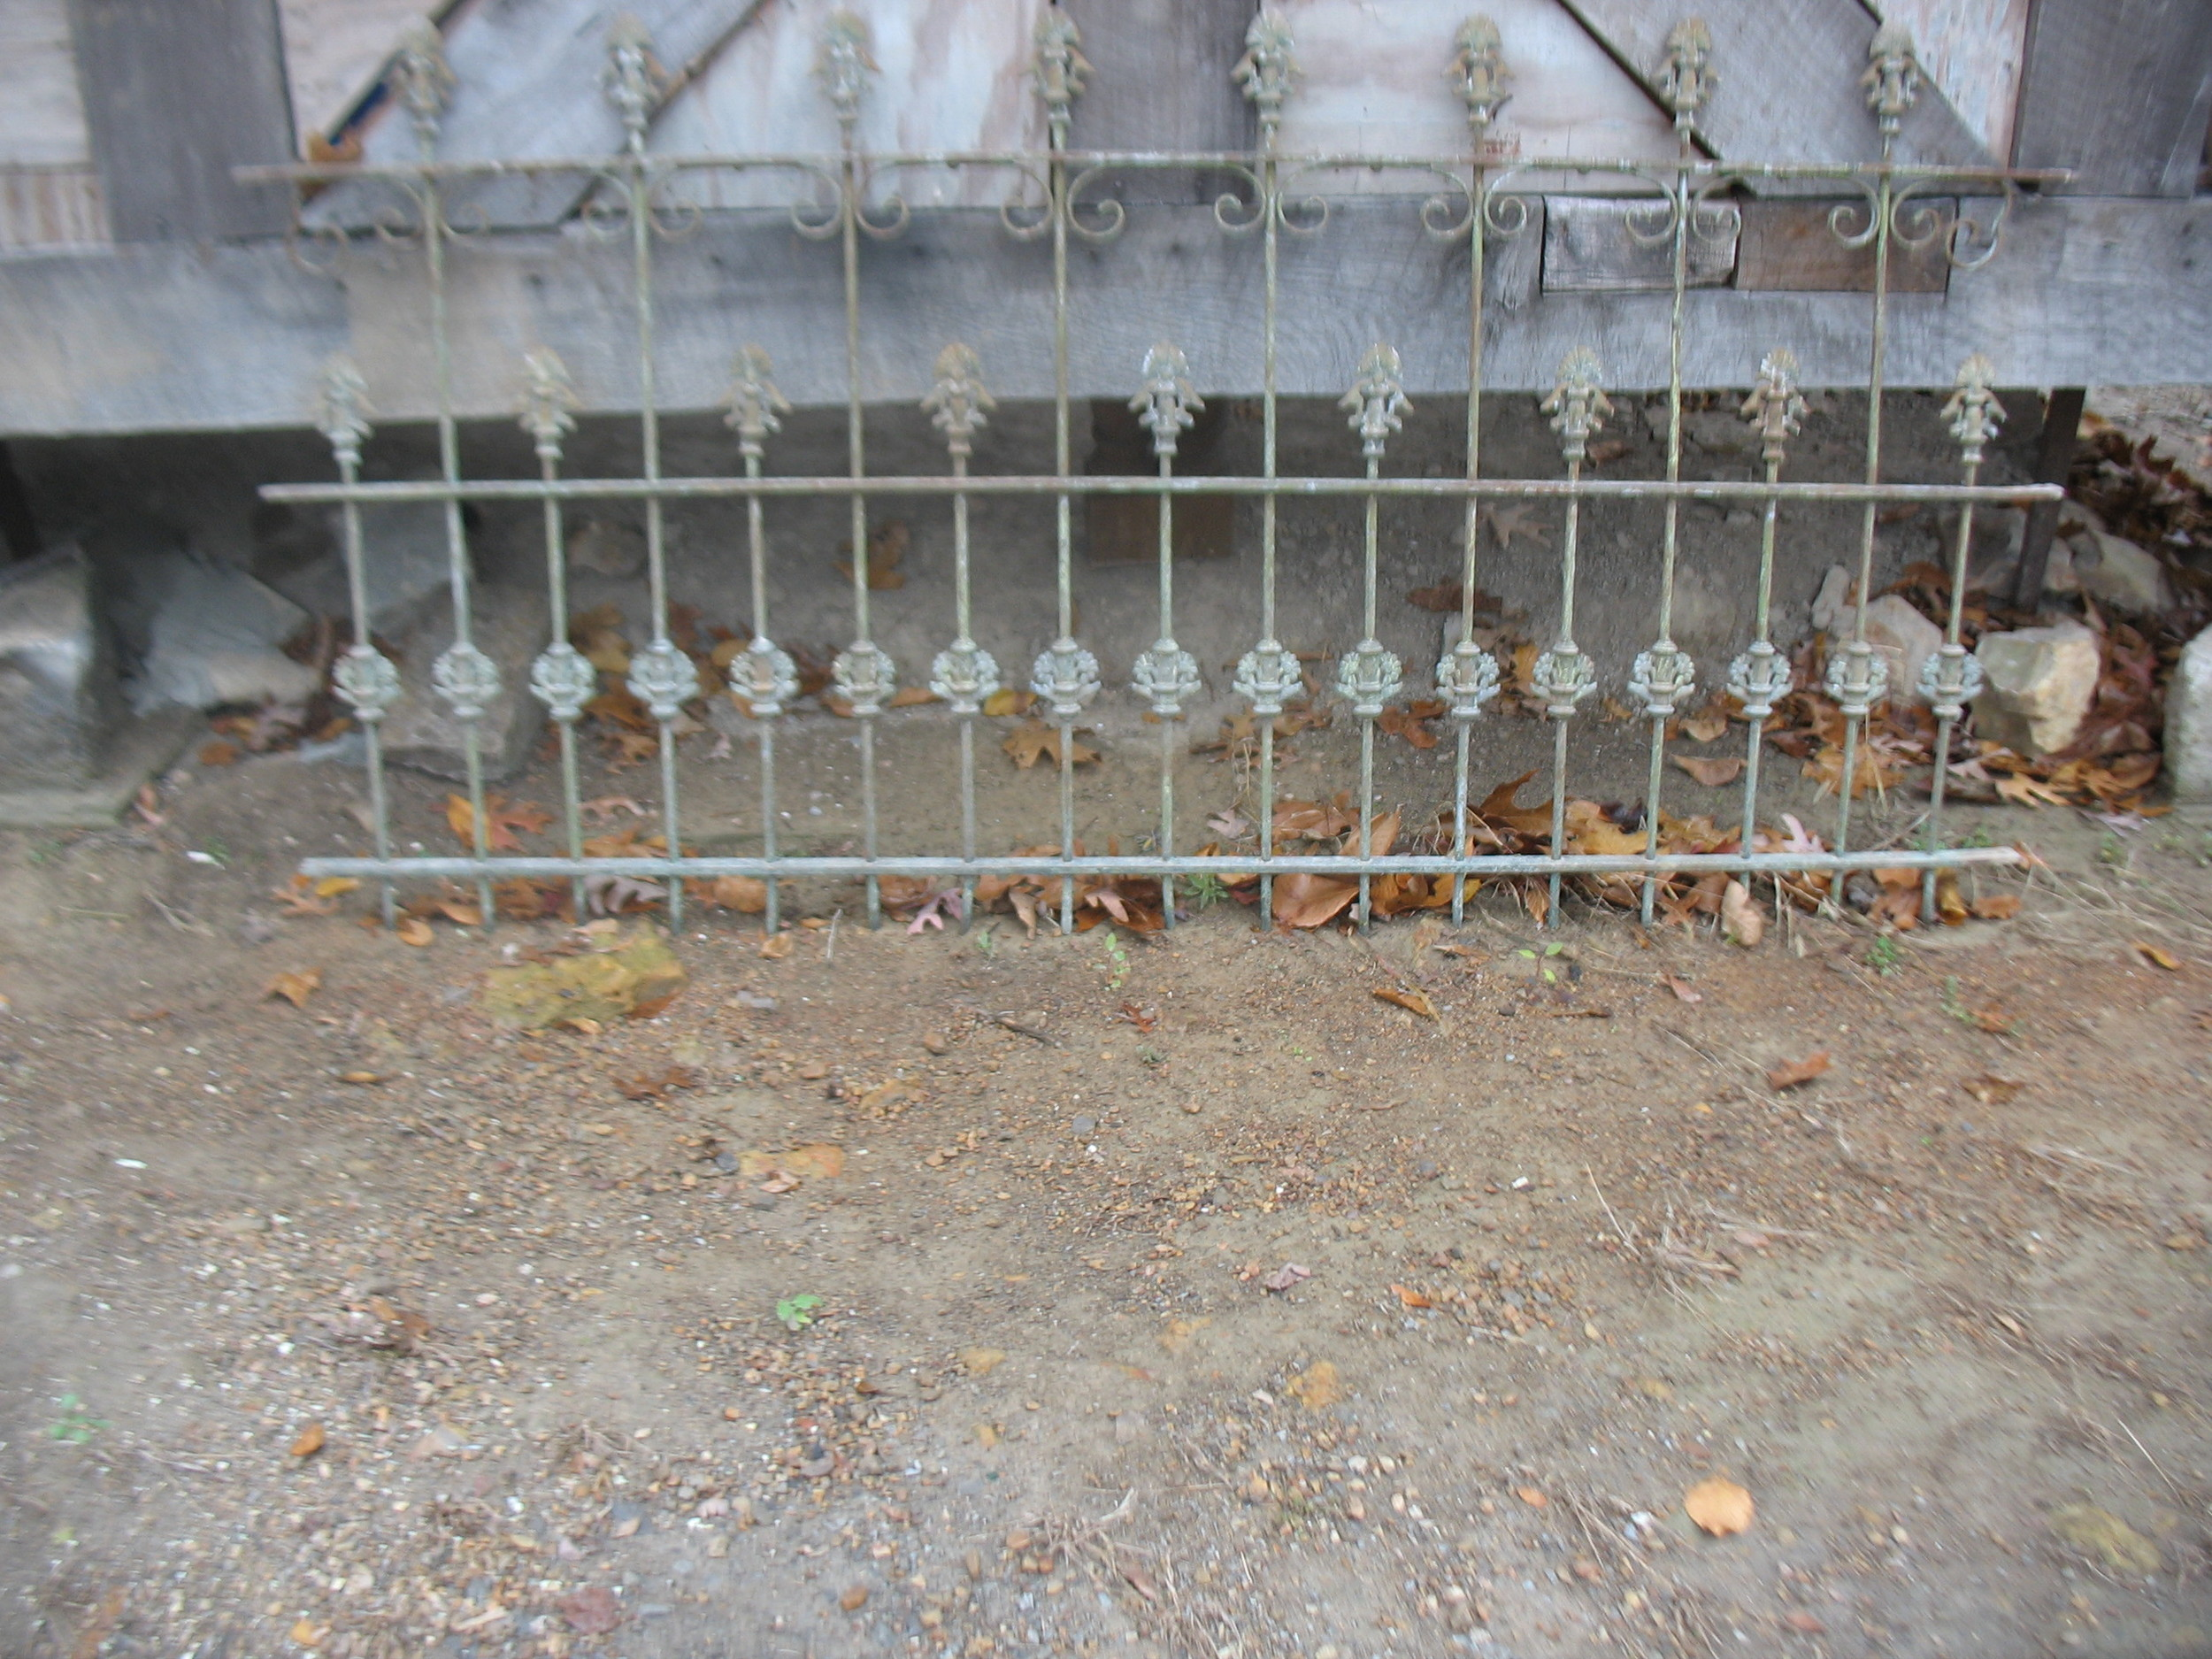 Beautiful intricate designed iron gate, perfect for a garden. Measures 5 feet 4 inches long and 3 feet tall.